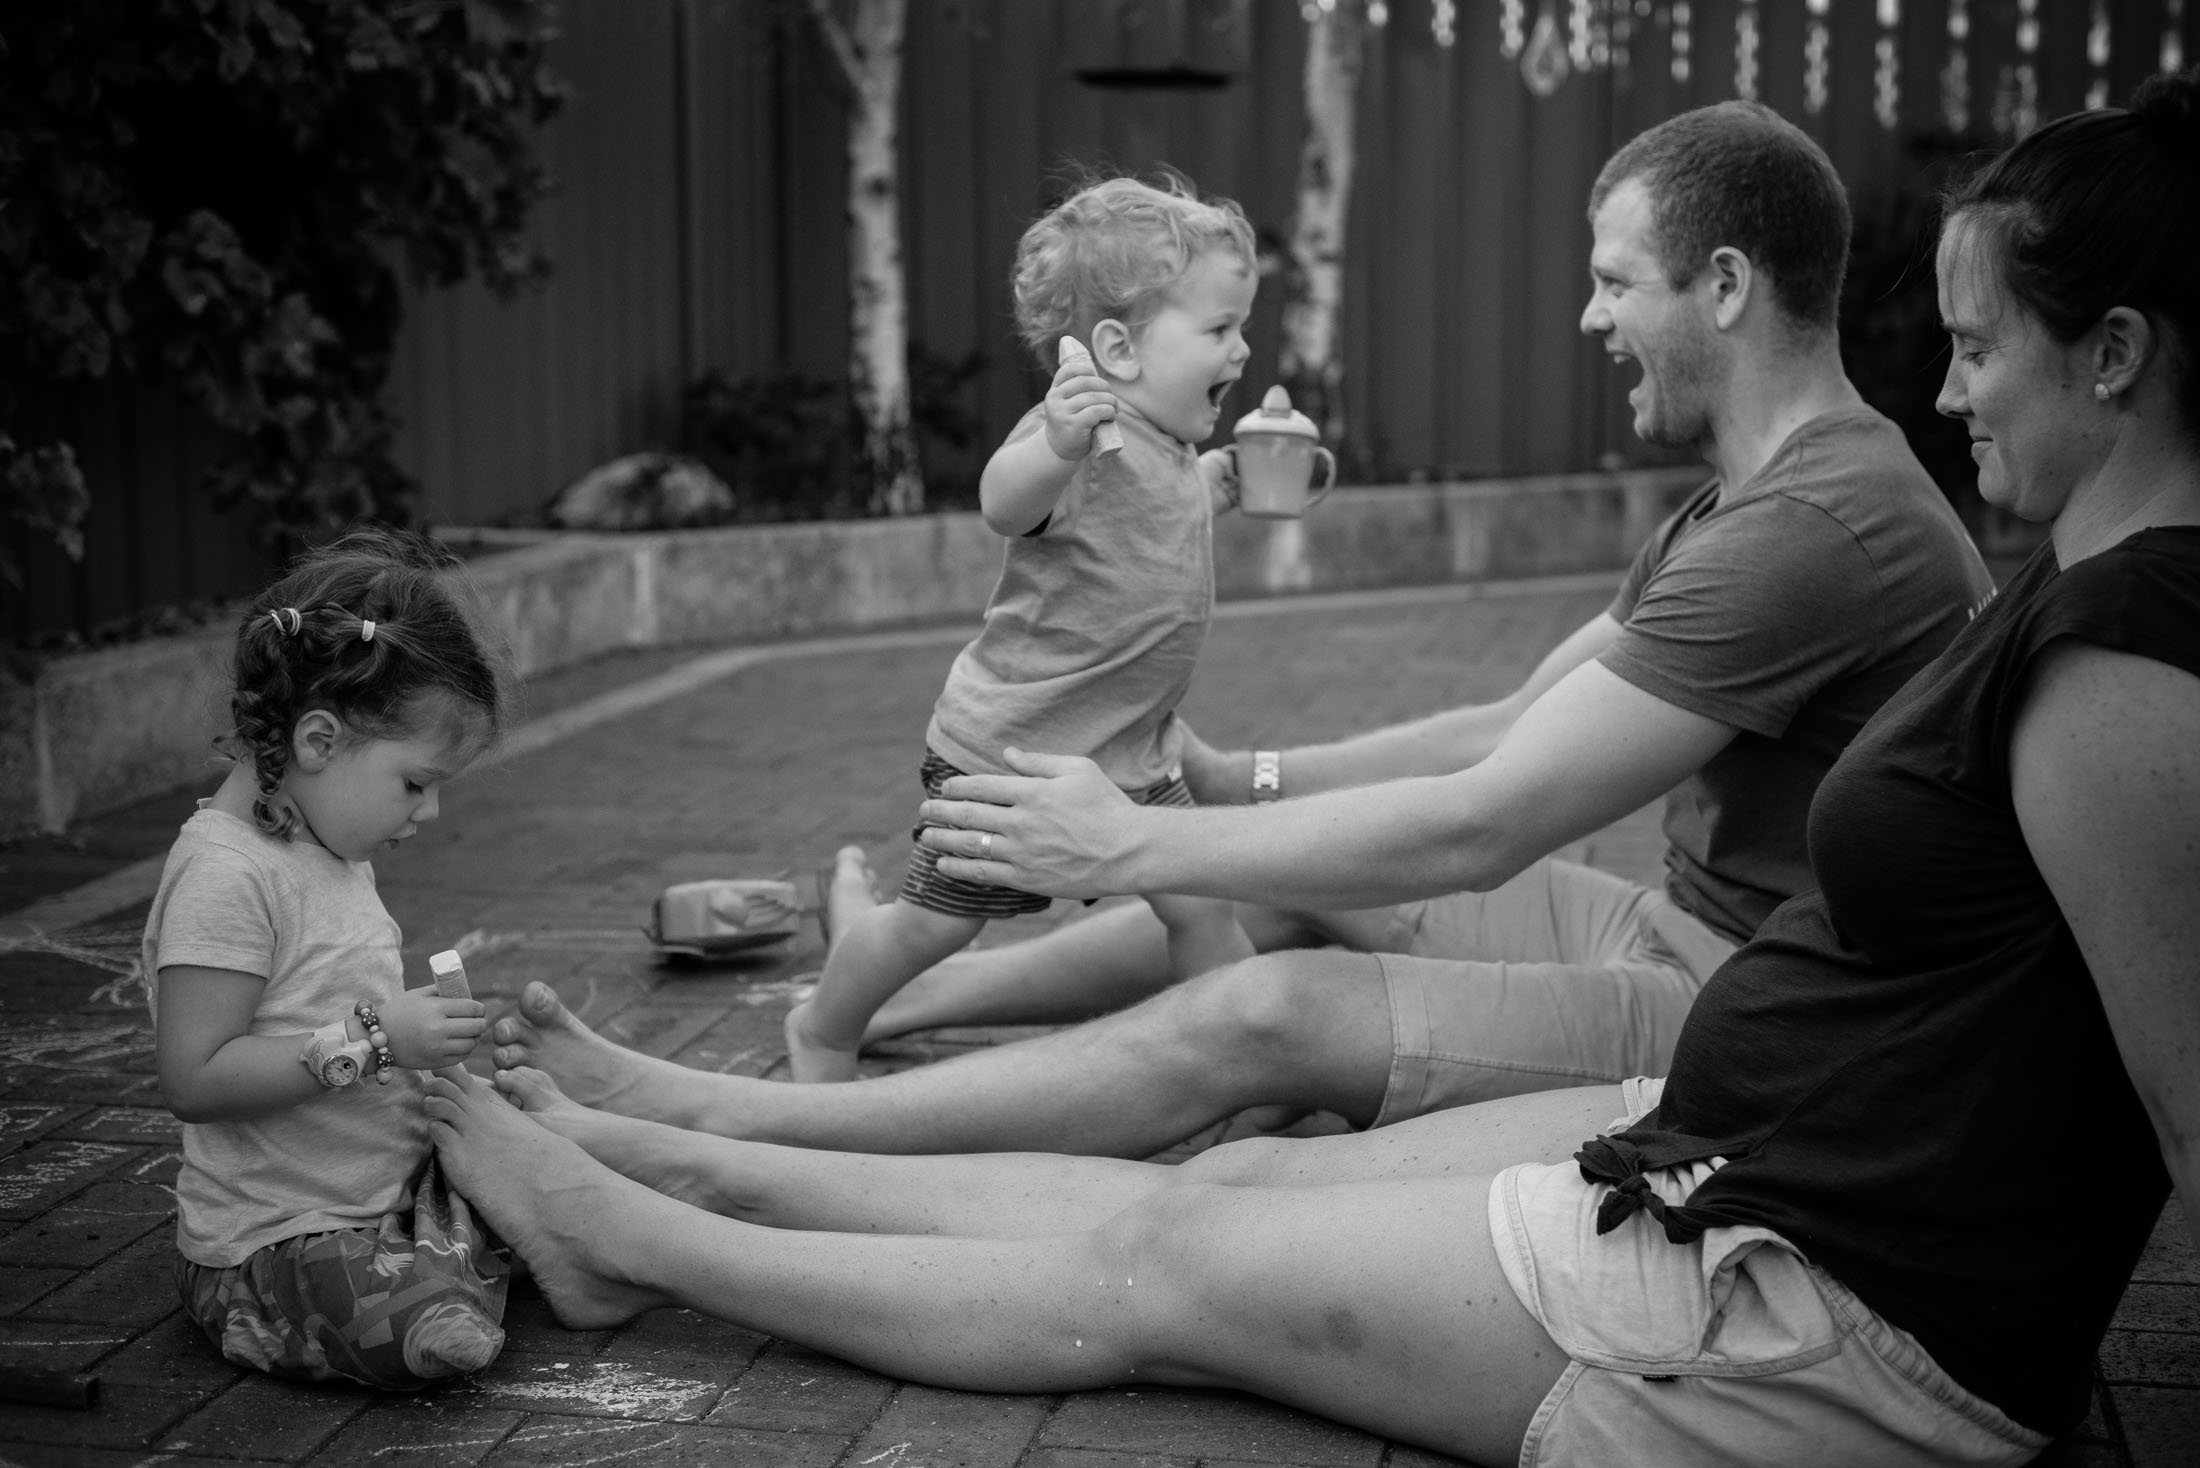 West_Family-Photography-unposed20.JPG